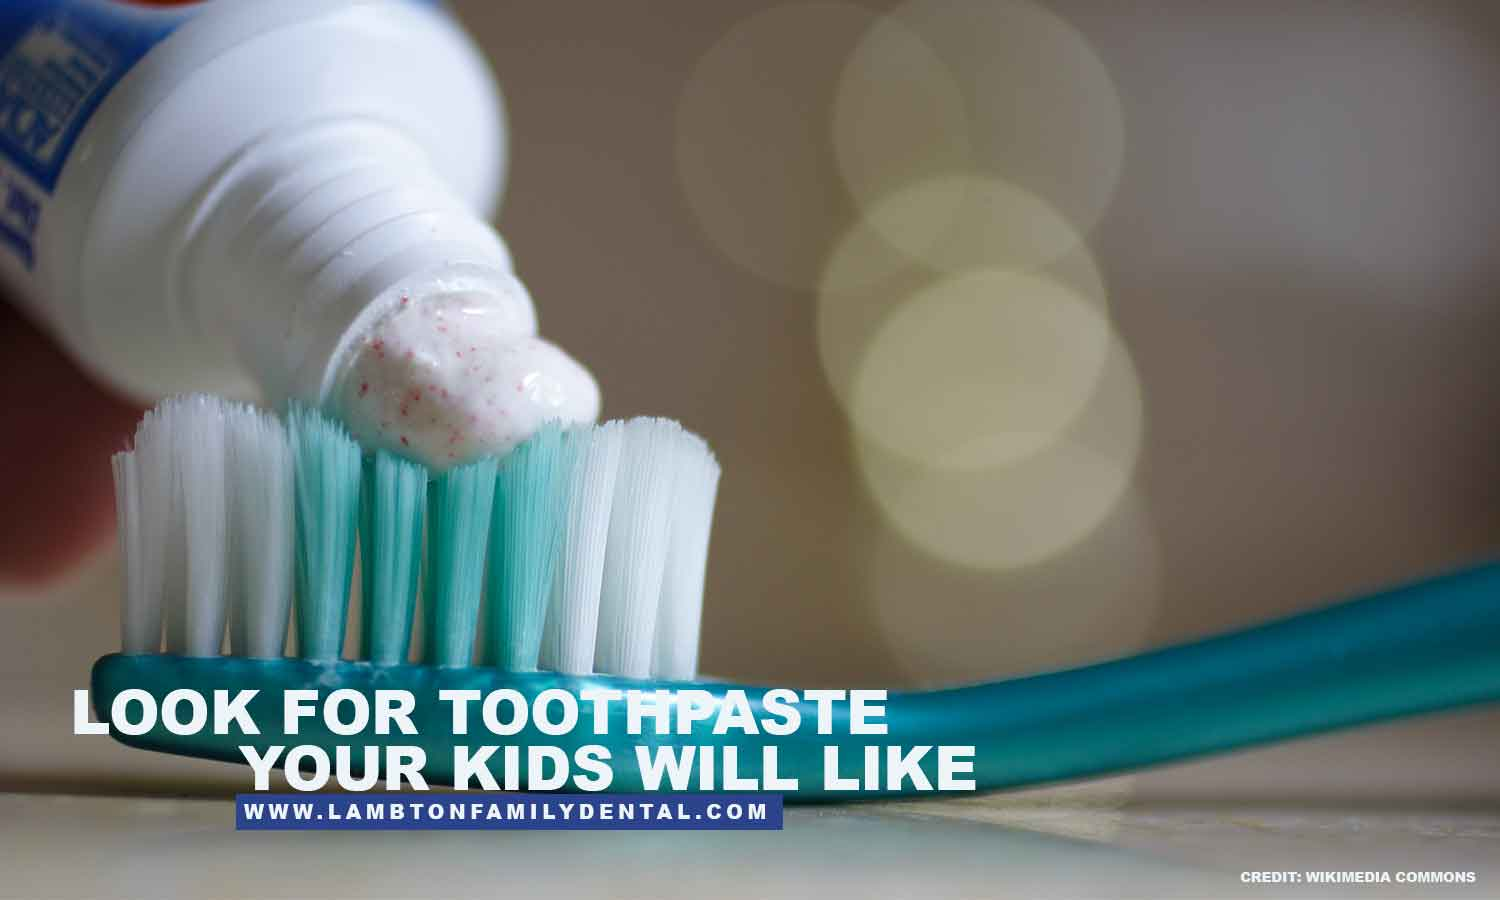 Look for toothpaste your kids will like